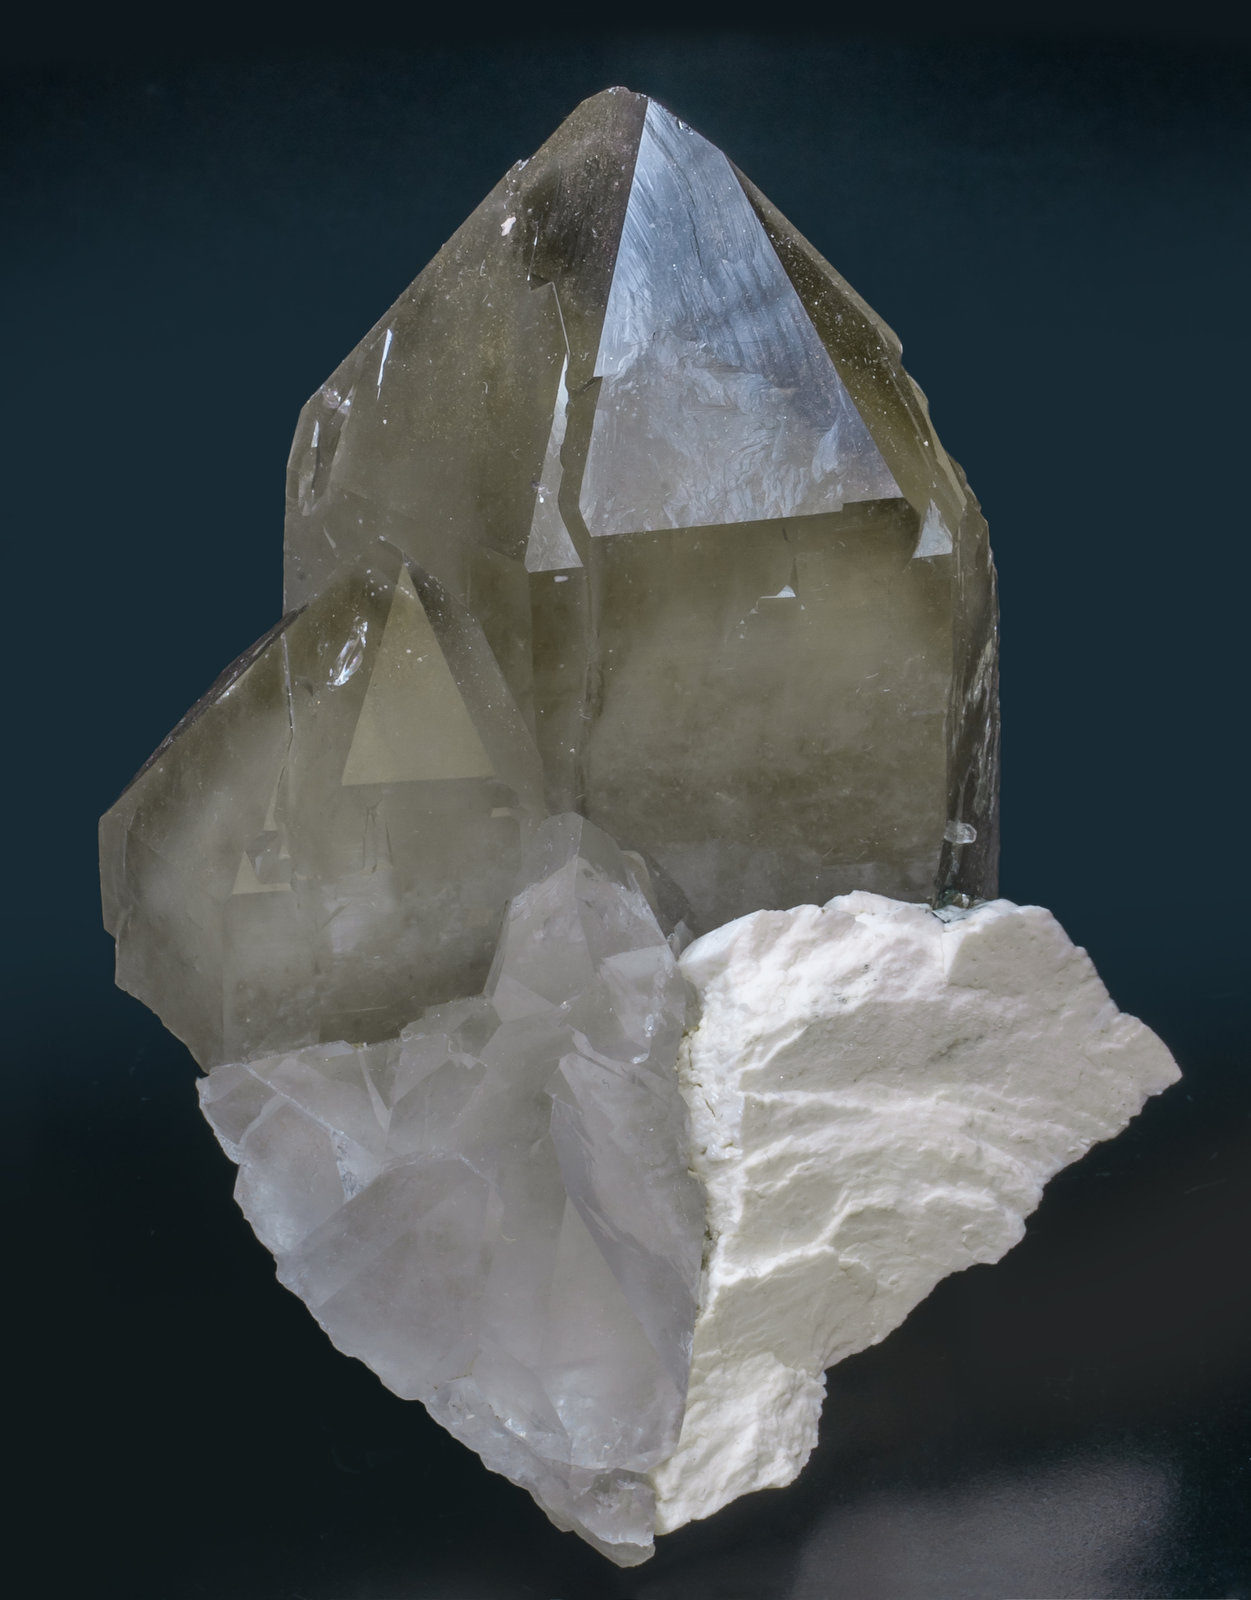 specimens/s_imagesAJ5/Quartz-EQ47AJ5f.jpg